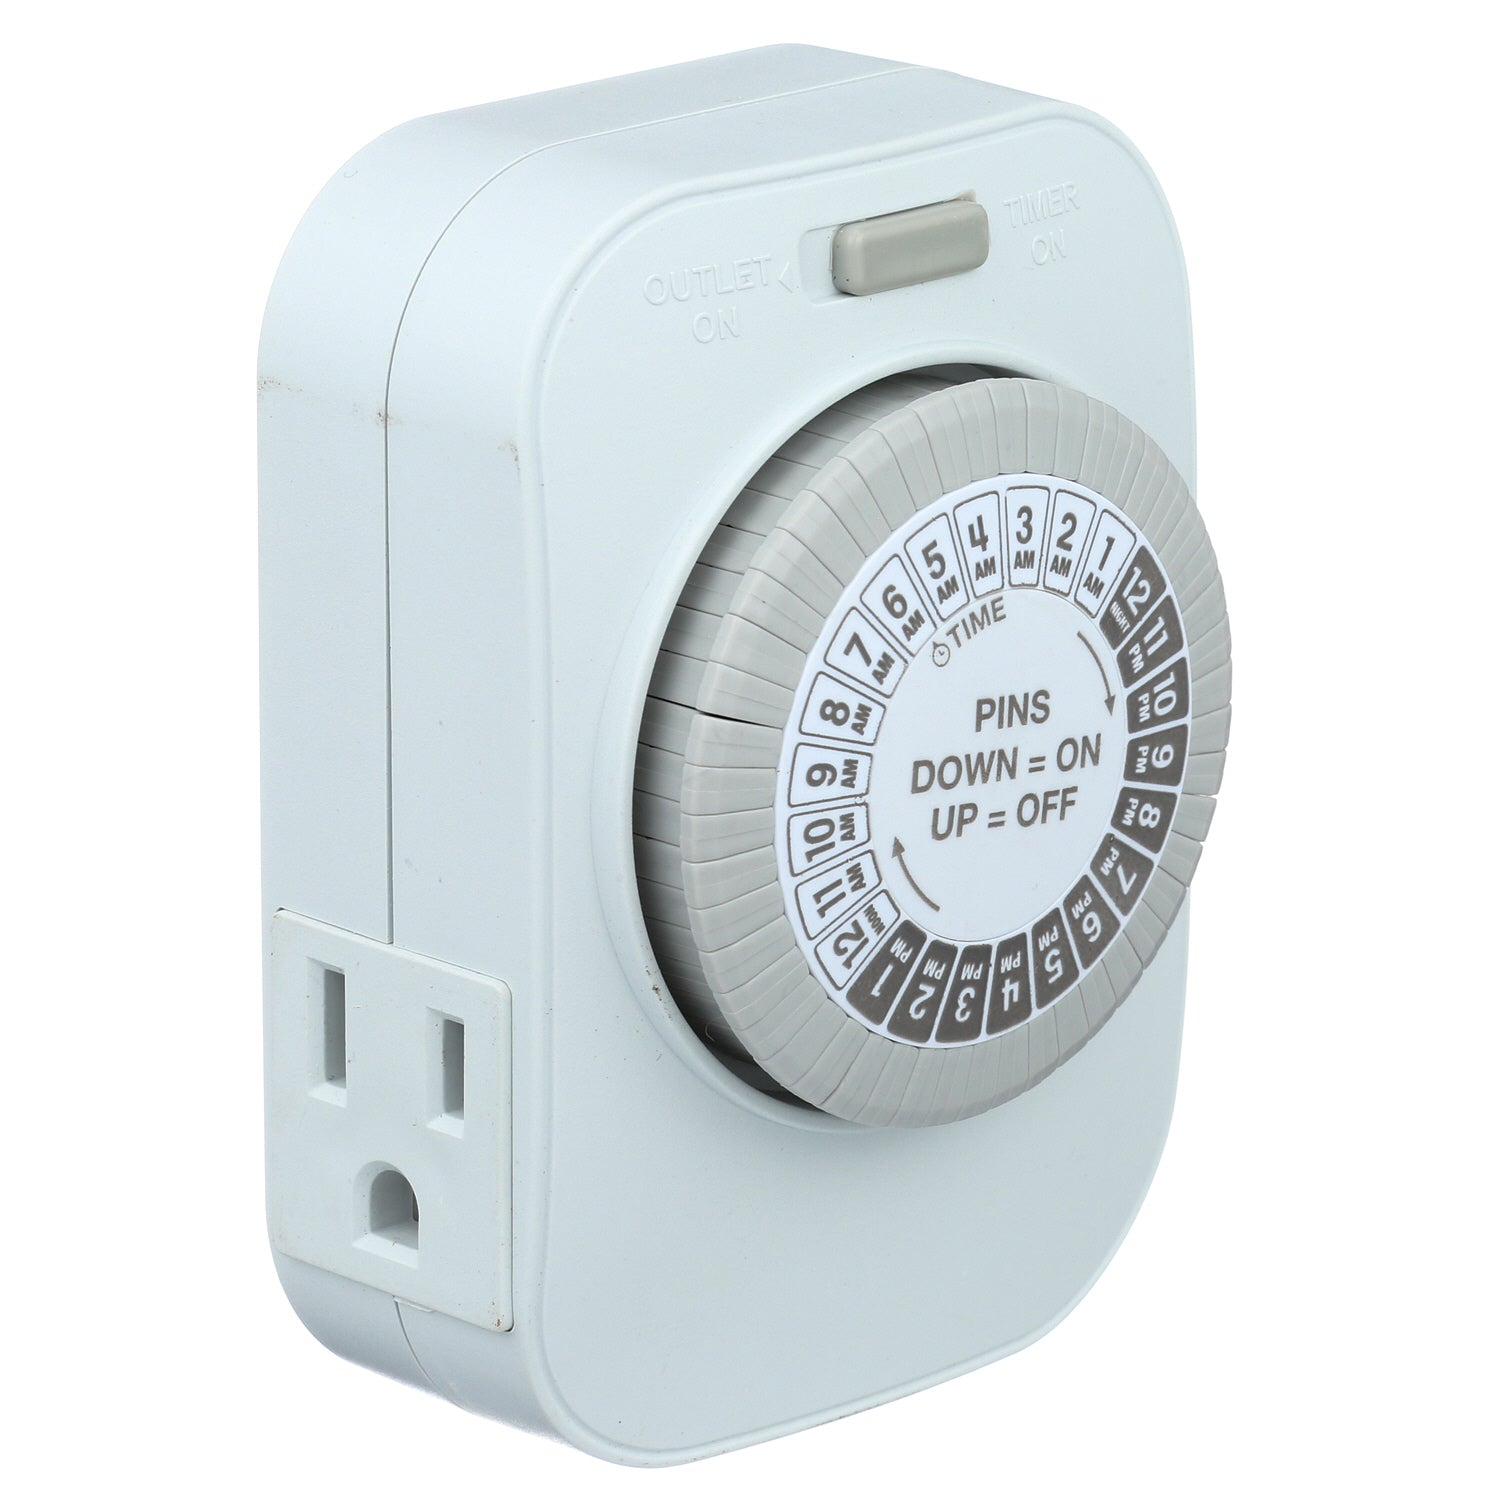 Intermatic Light Timer 7 Day Dial Time Switch U0026 Manual Manual Guide